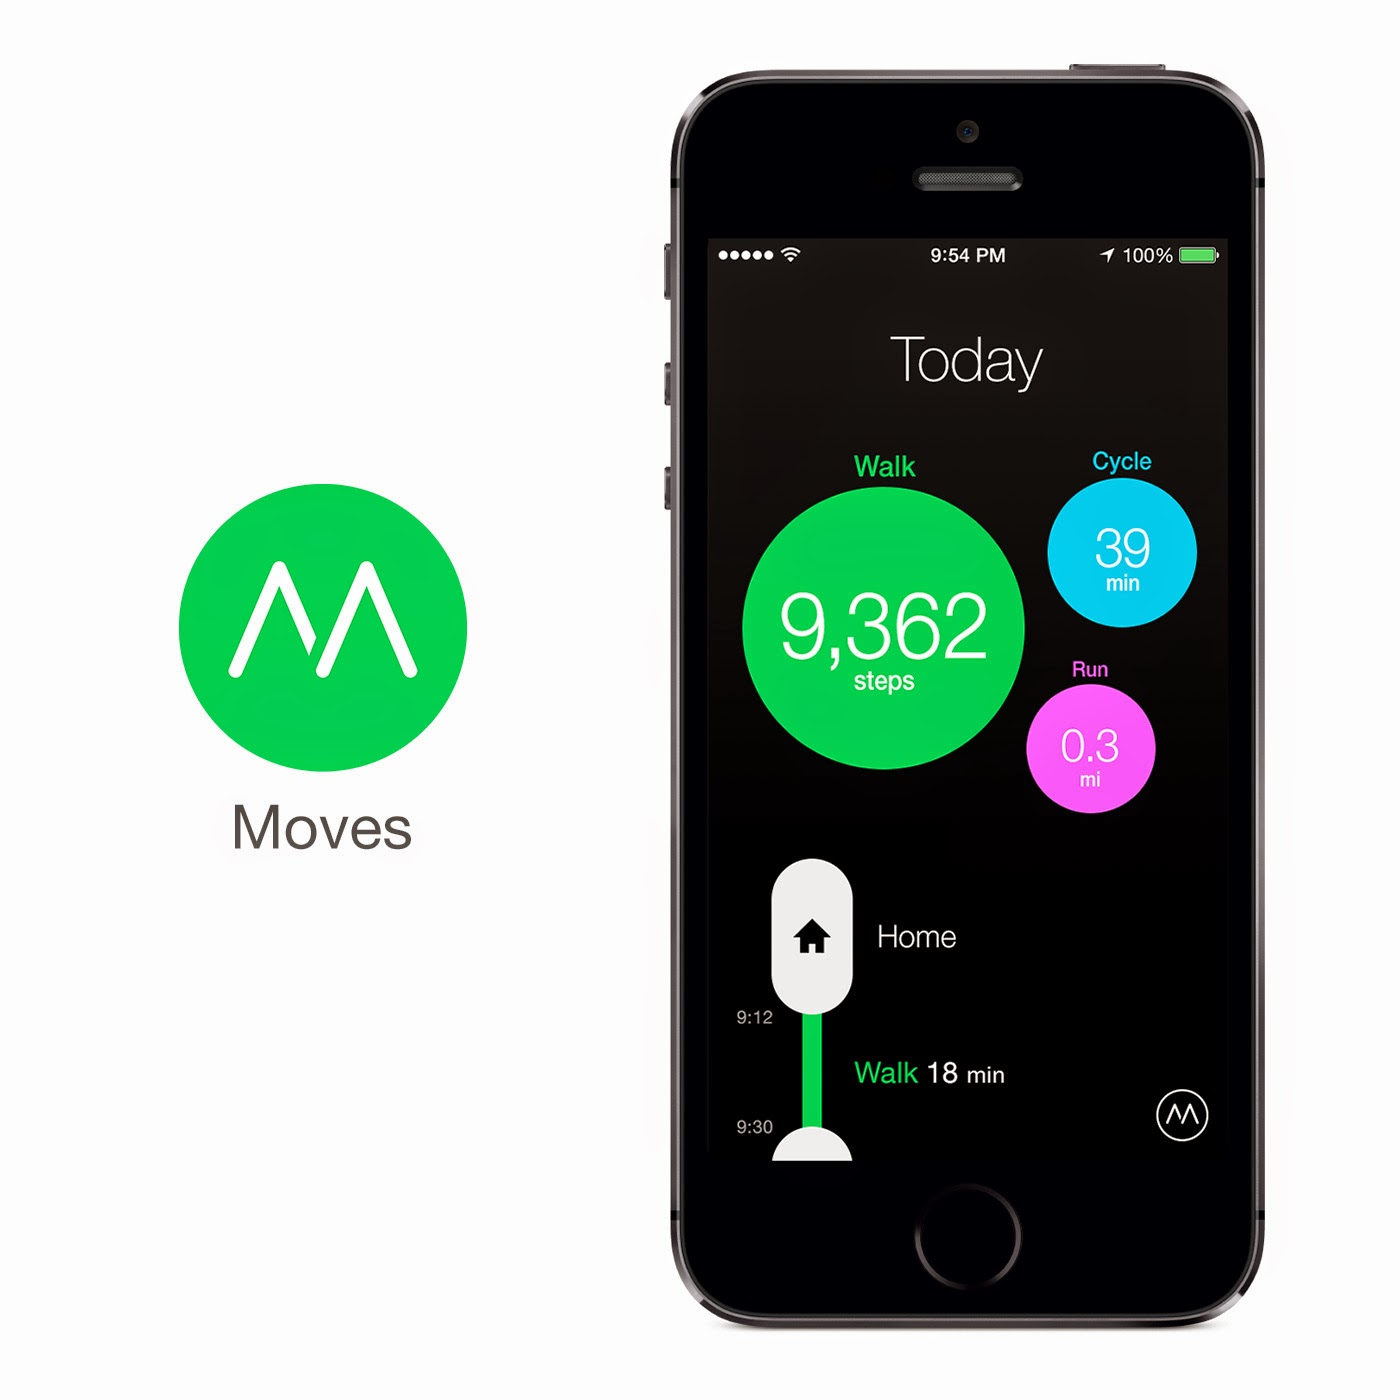 health and wellness app, Moves app, Facebook Moves app, facebook, Facebook buys Moves, social media, ProtoGe